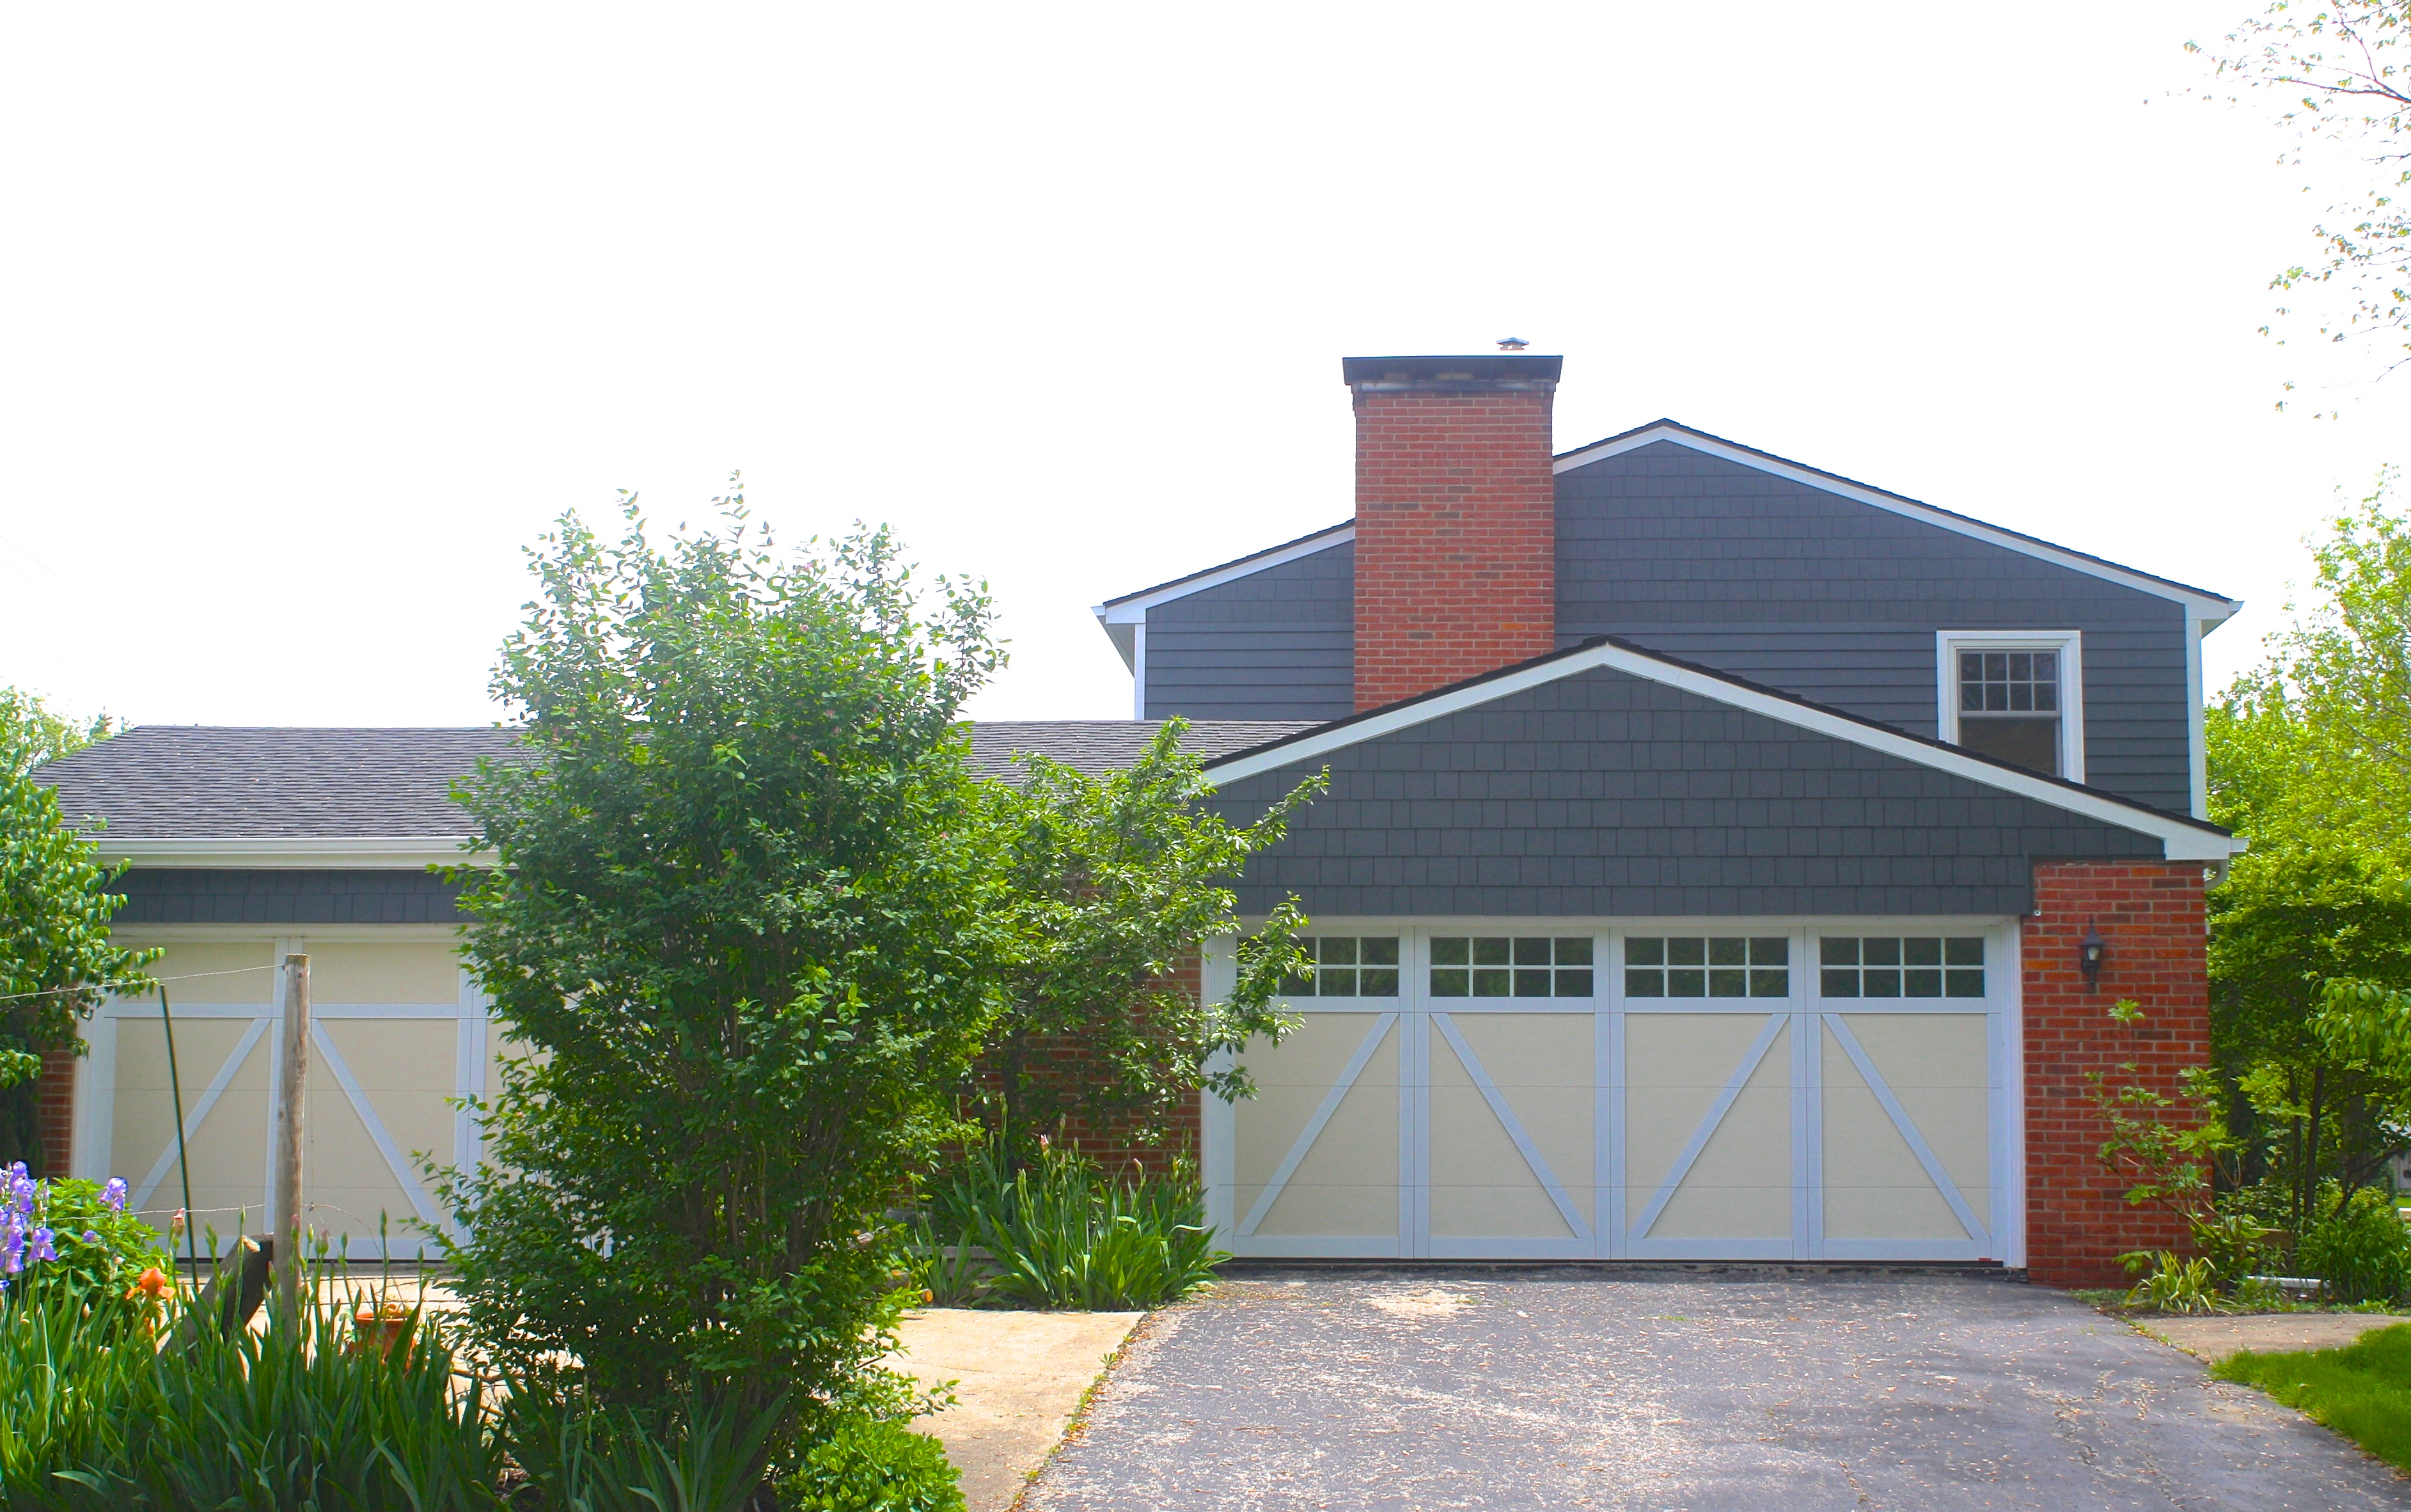 James Hardie Fiber Cement Siding In Iron Gray And Straight Edged Shakes In Bloomington Il